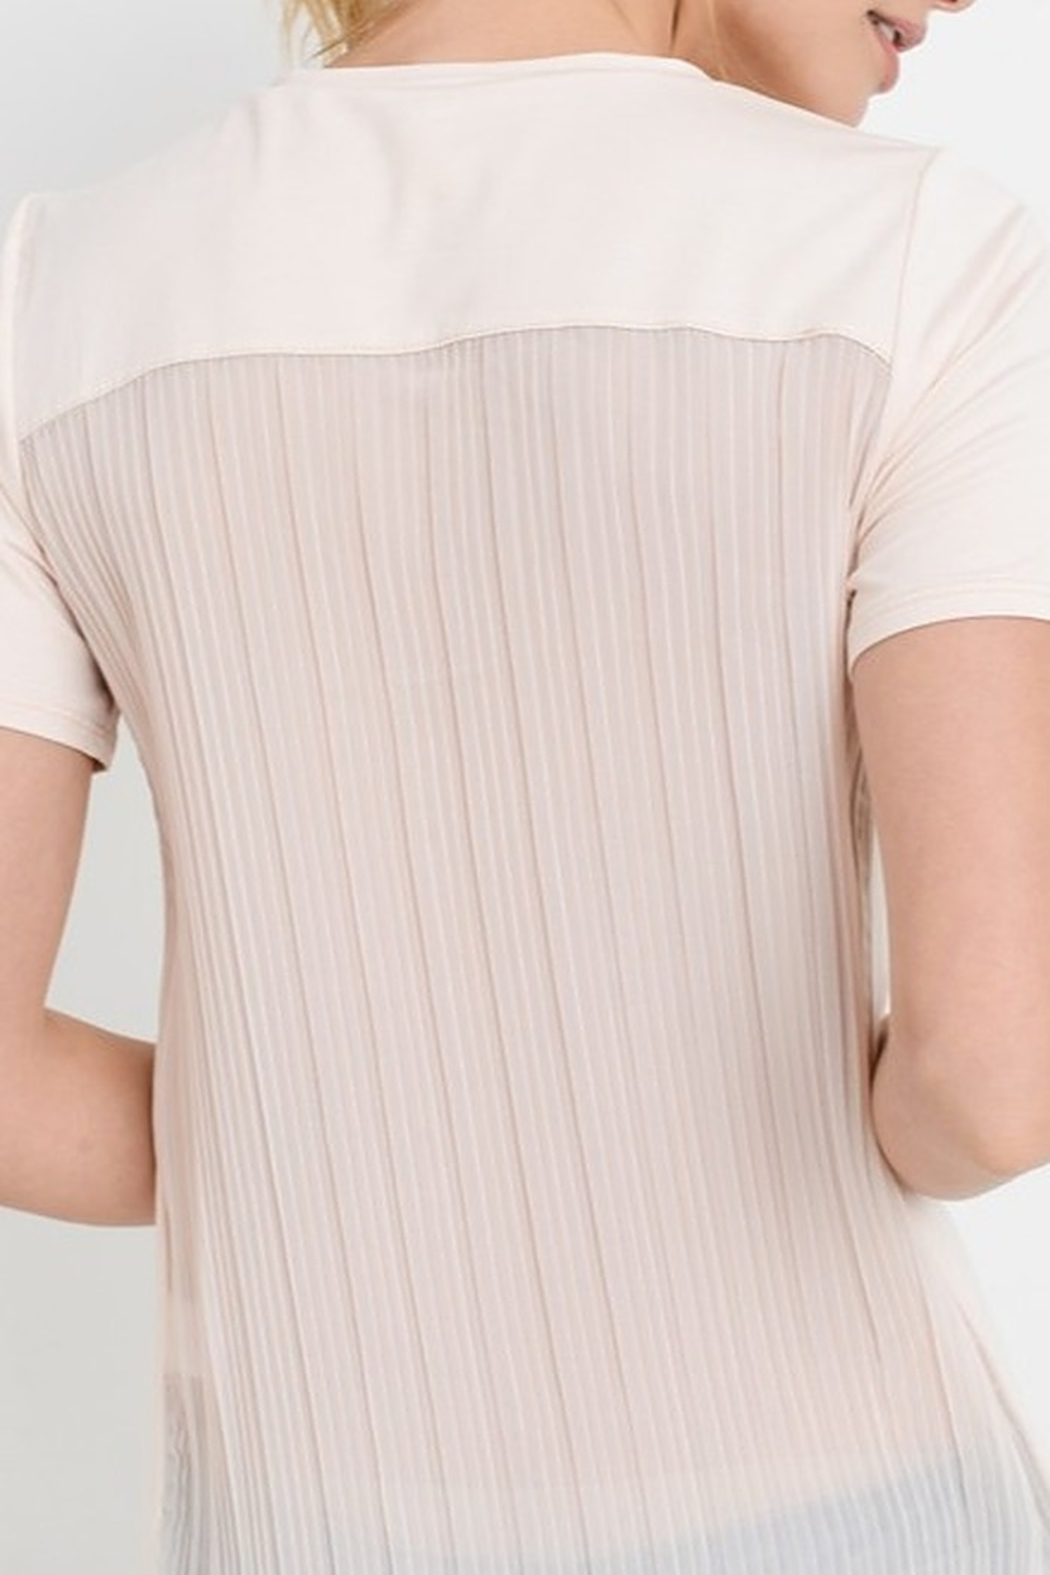 Papercrane Pleated Back Top - Back Cropped Image